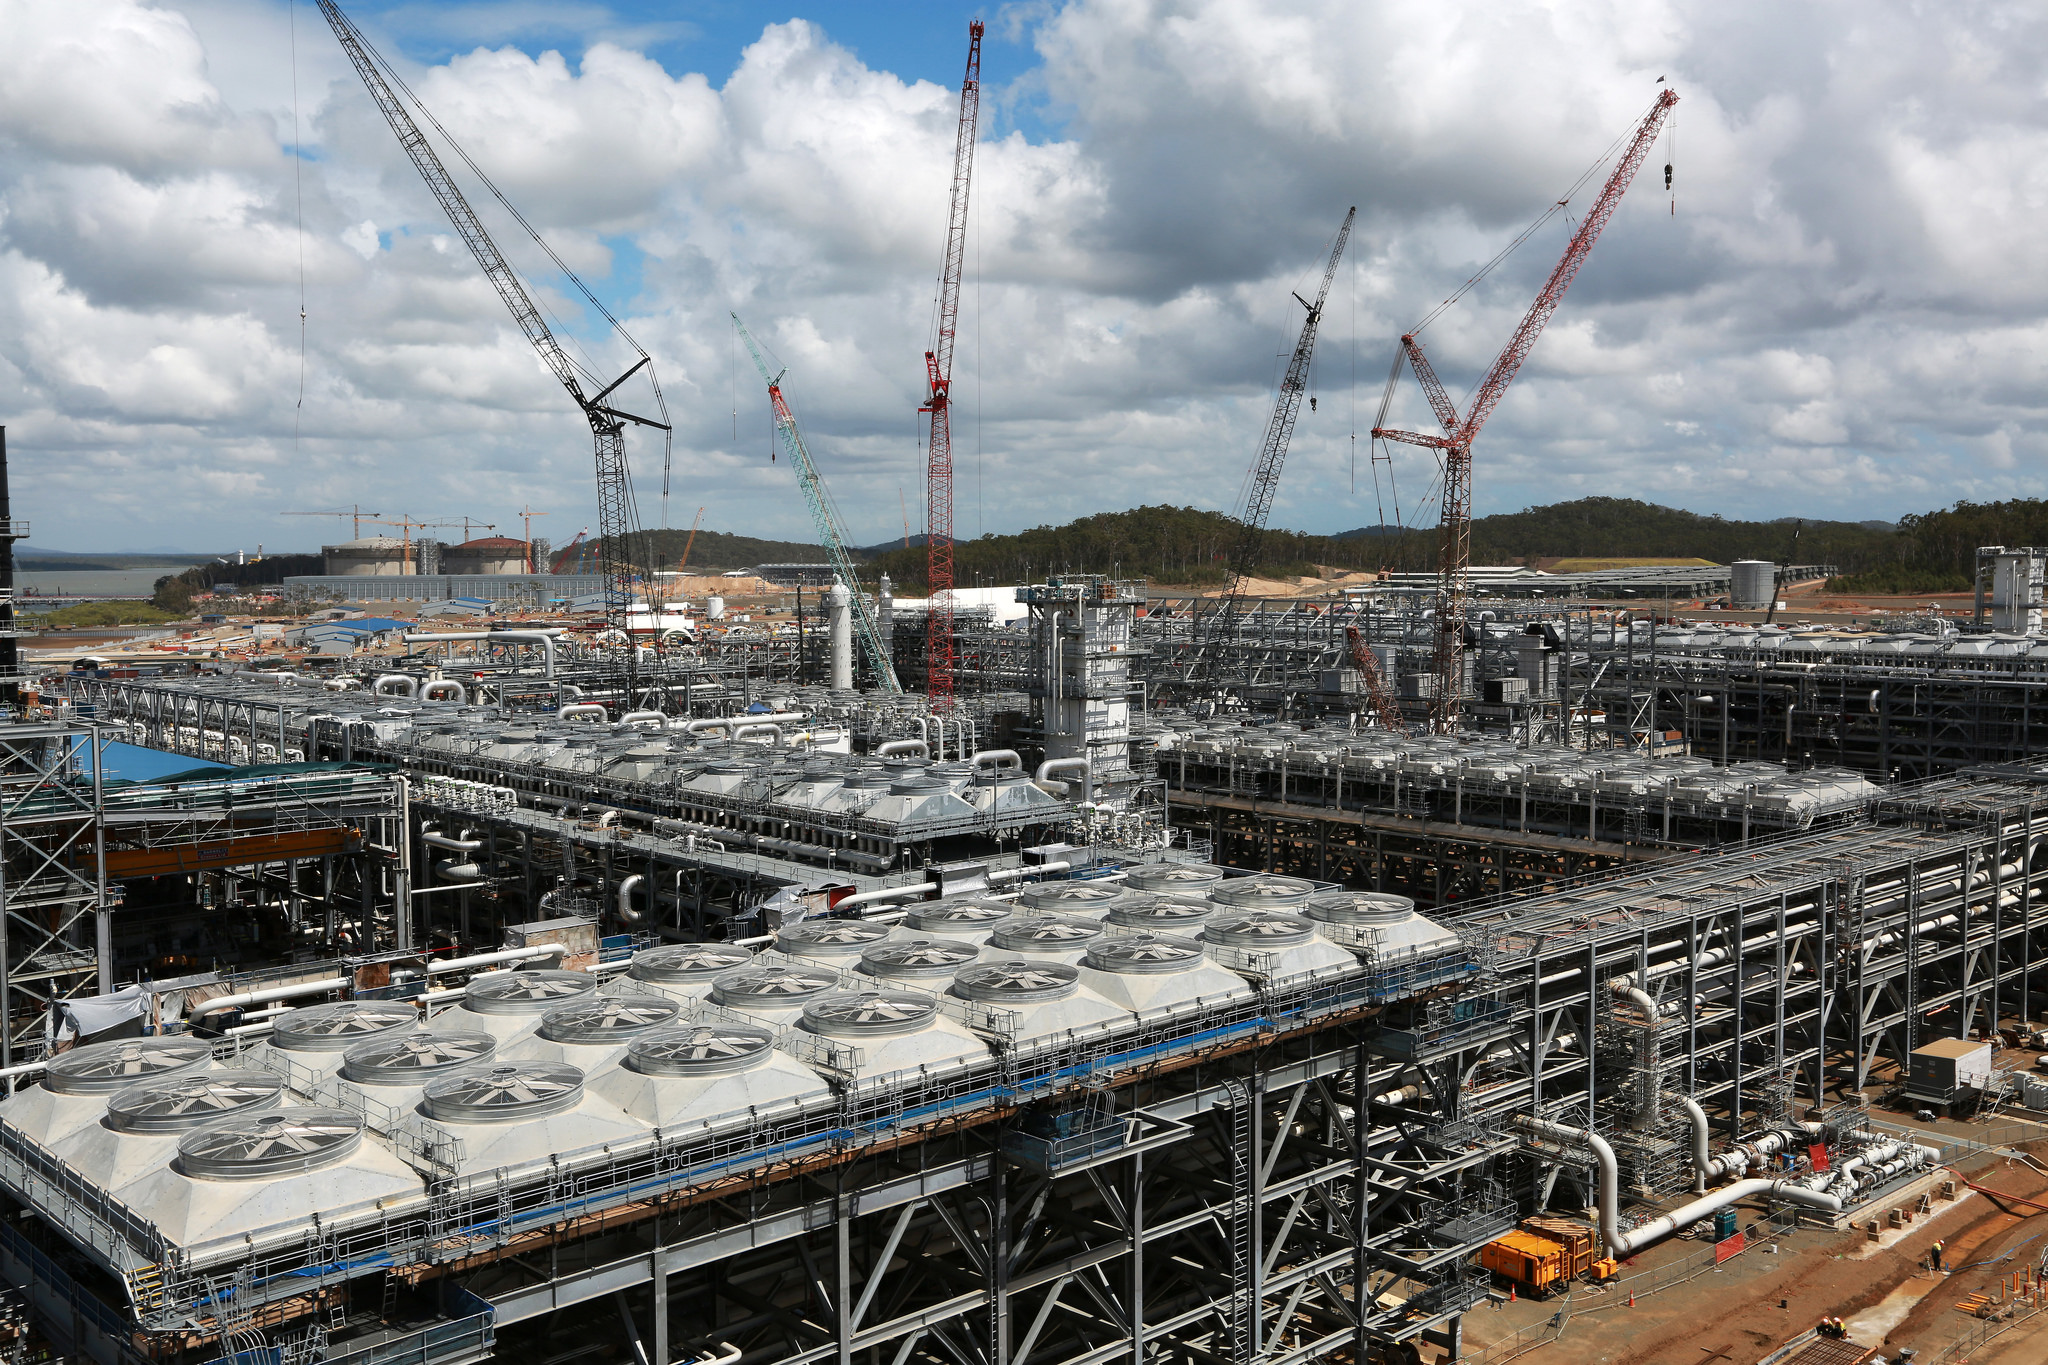 The deal revolves around making the most out of ventures like Shell's massive Queensland LNG project.